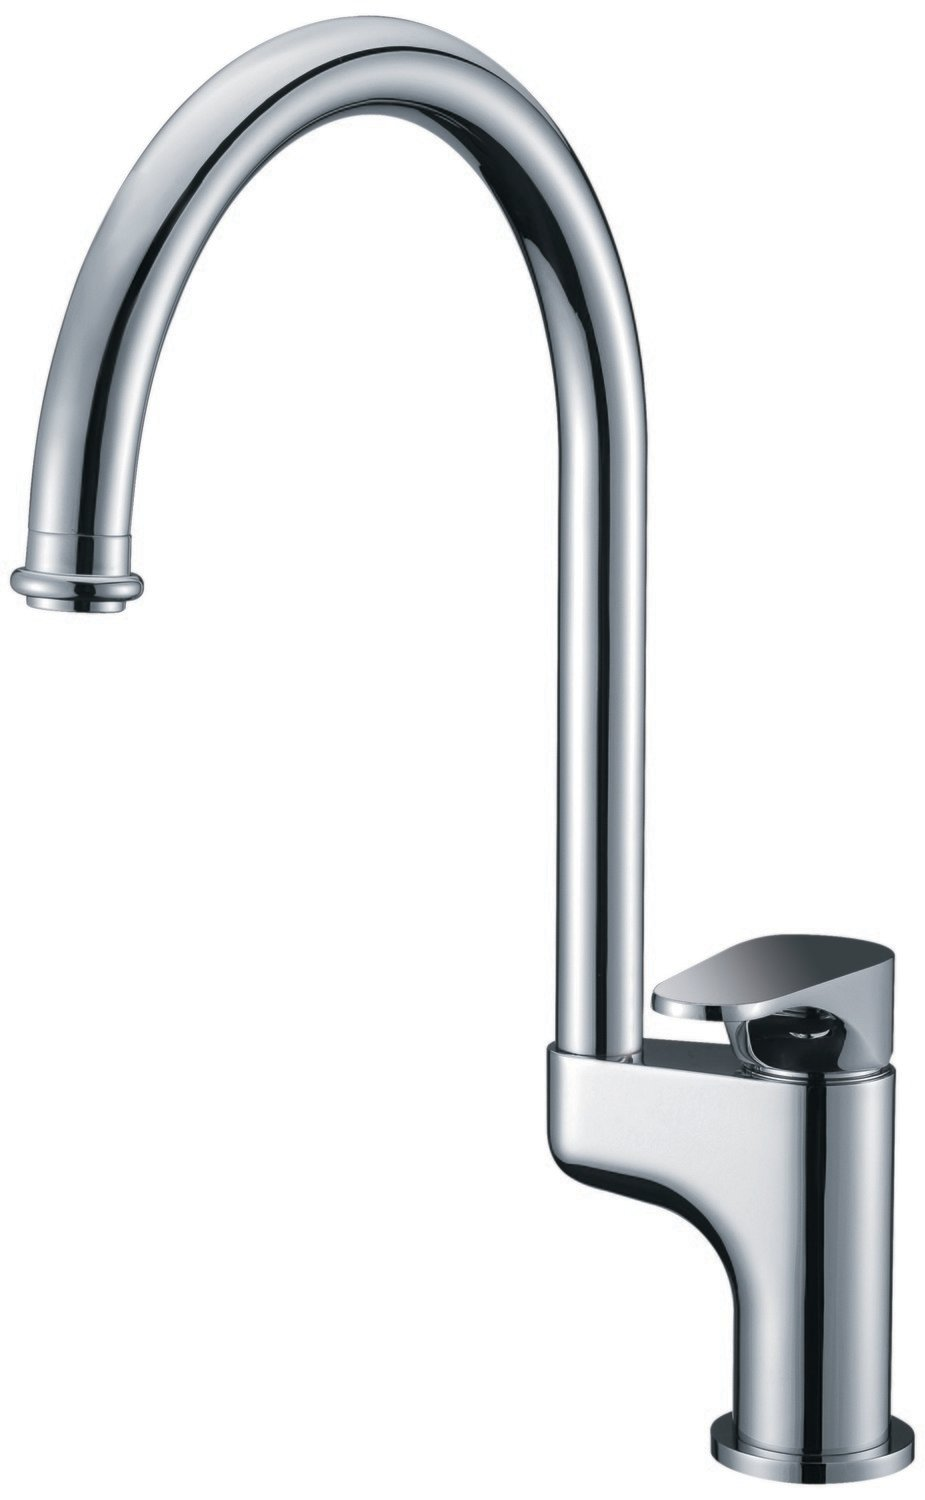 Single-lever kitchen faucet